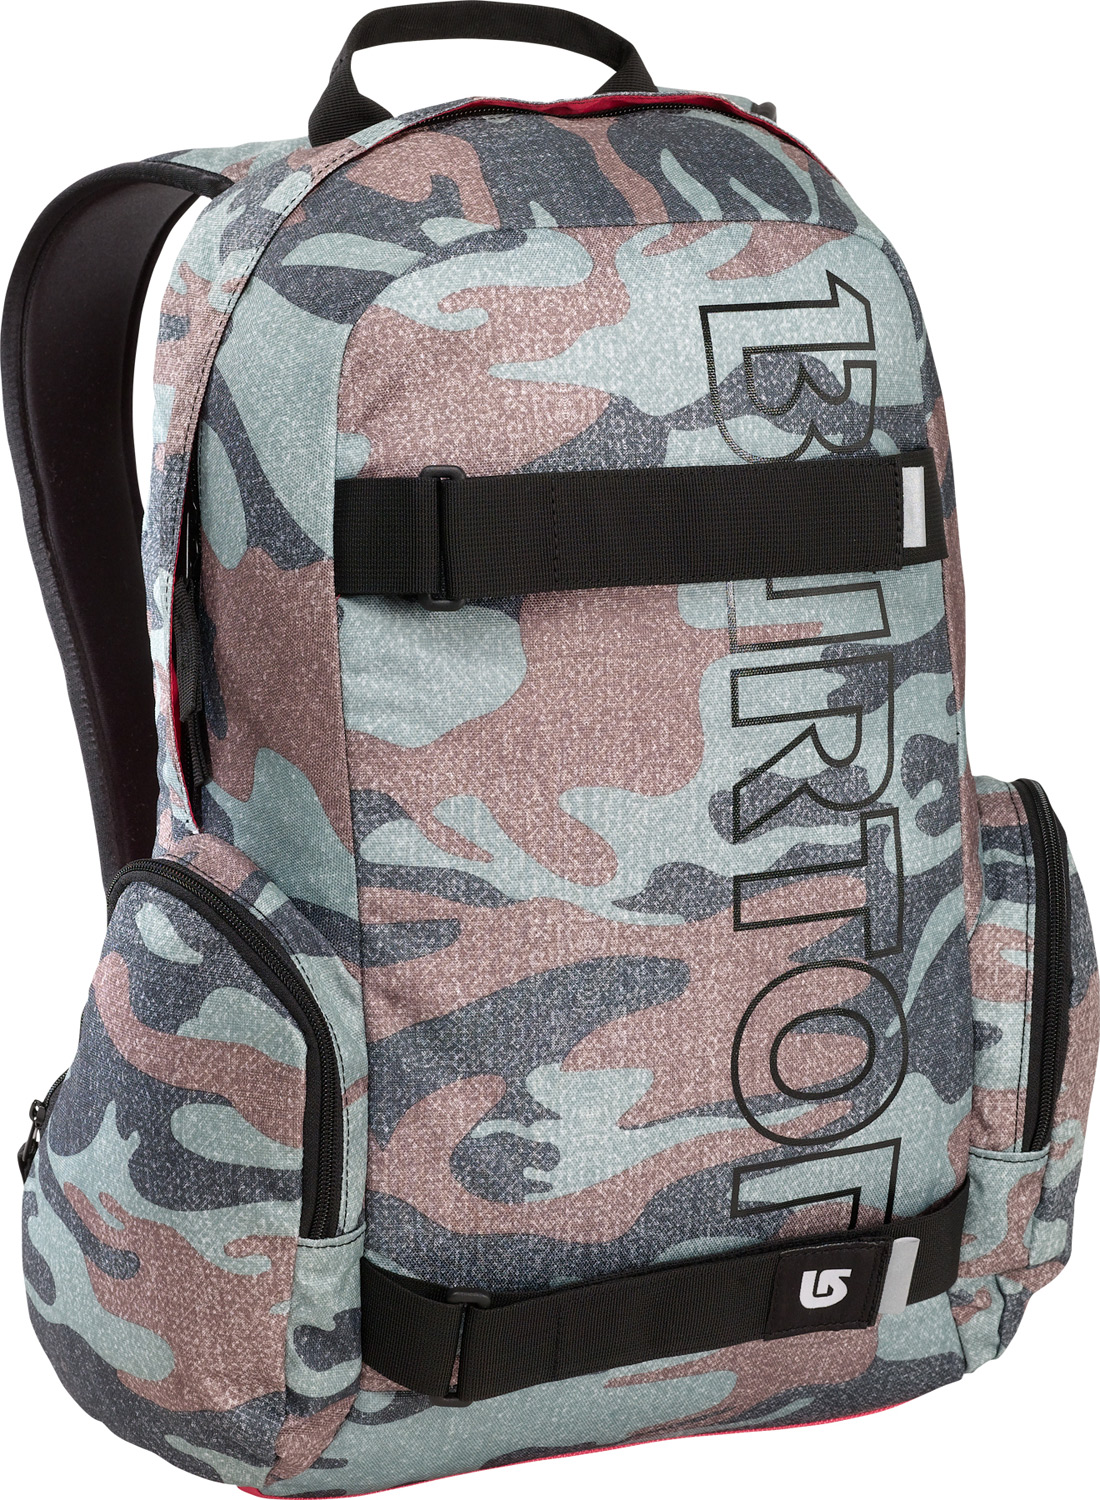 Snowboard Full featured skate pack with big time branding.Key Features of the Burton Emphasis Backpack: Fabrication: 600D Polyester / 300D Polyester Dobby Padded Laptop Pocket [11.5 in. x 10 in. x 1.5 in.] [29cm x 26cm x 4cm] Vertical Skate Carry Cush Ergonomic Shoulder Harness with Adjustable Sternum Strap Fleece-Lined Internal Pocket Dimensions: [18.5 in. x 12 in. x 7.5 in.] [47cm x 31cm x 19cm] 26L - $27.95